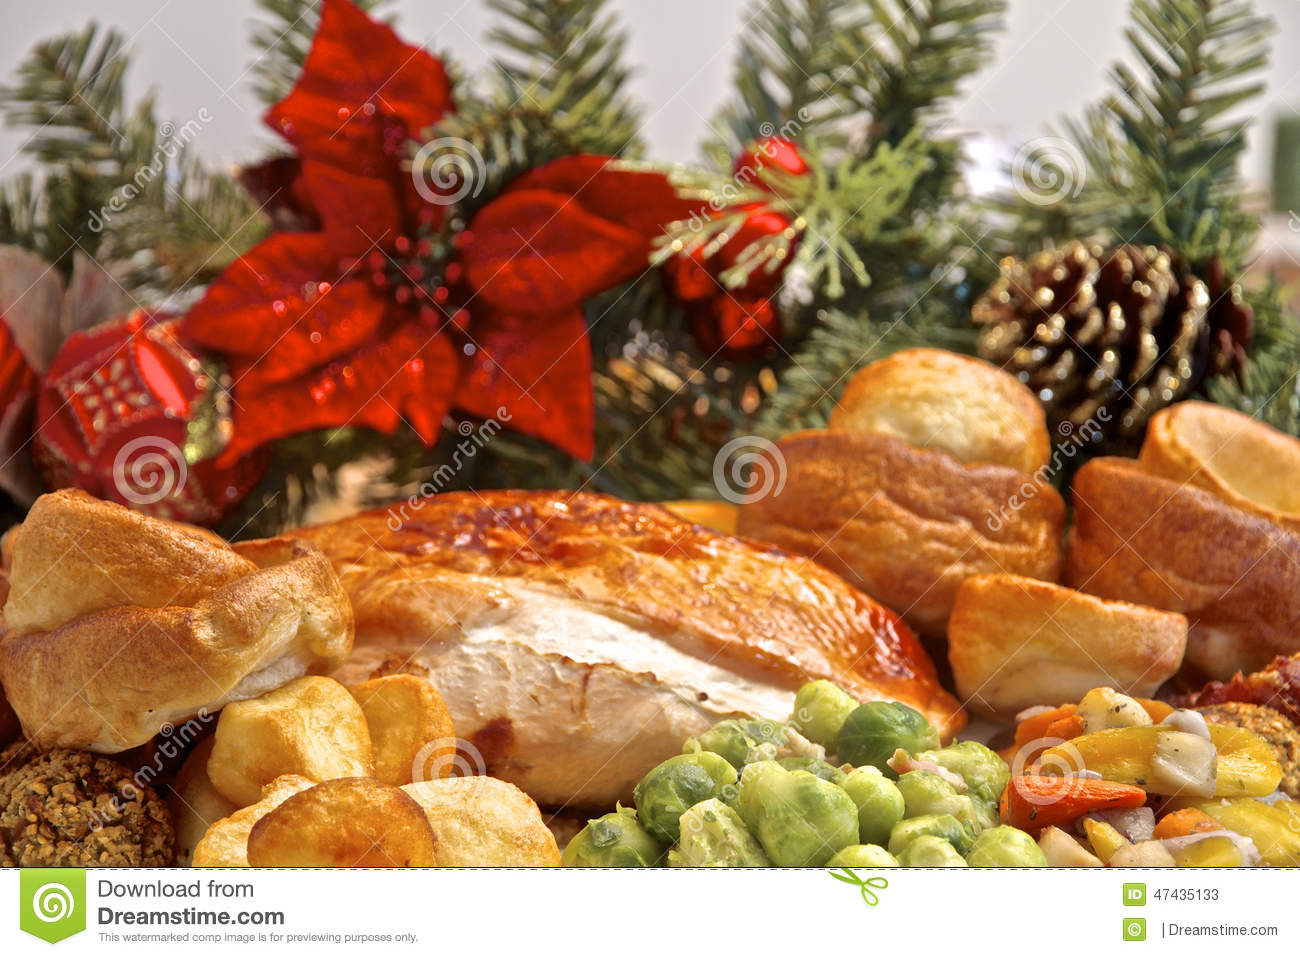 Christmas Turkey Dinner Stock Photo - Image: 47435133